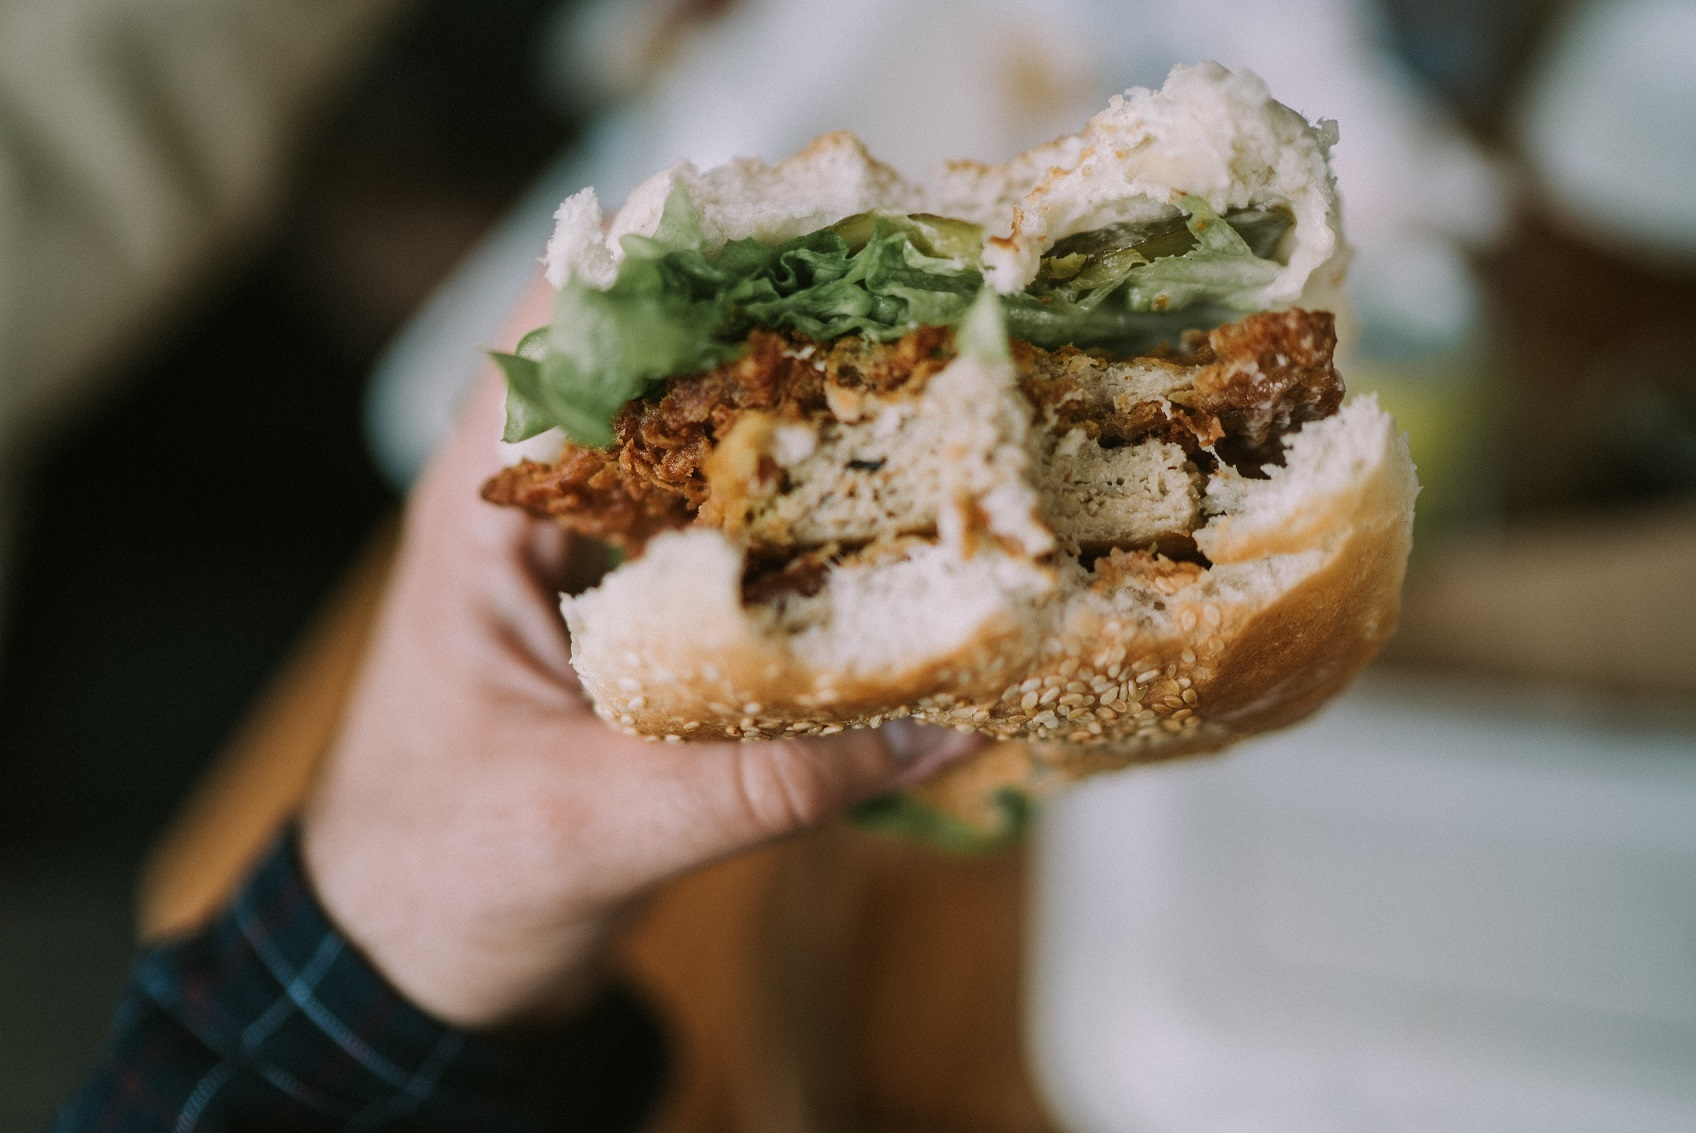 Plant-based chicken with bites held up by hand